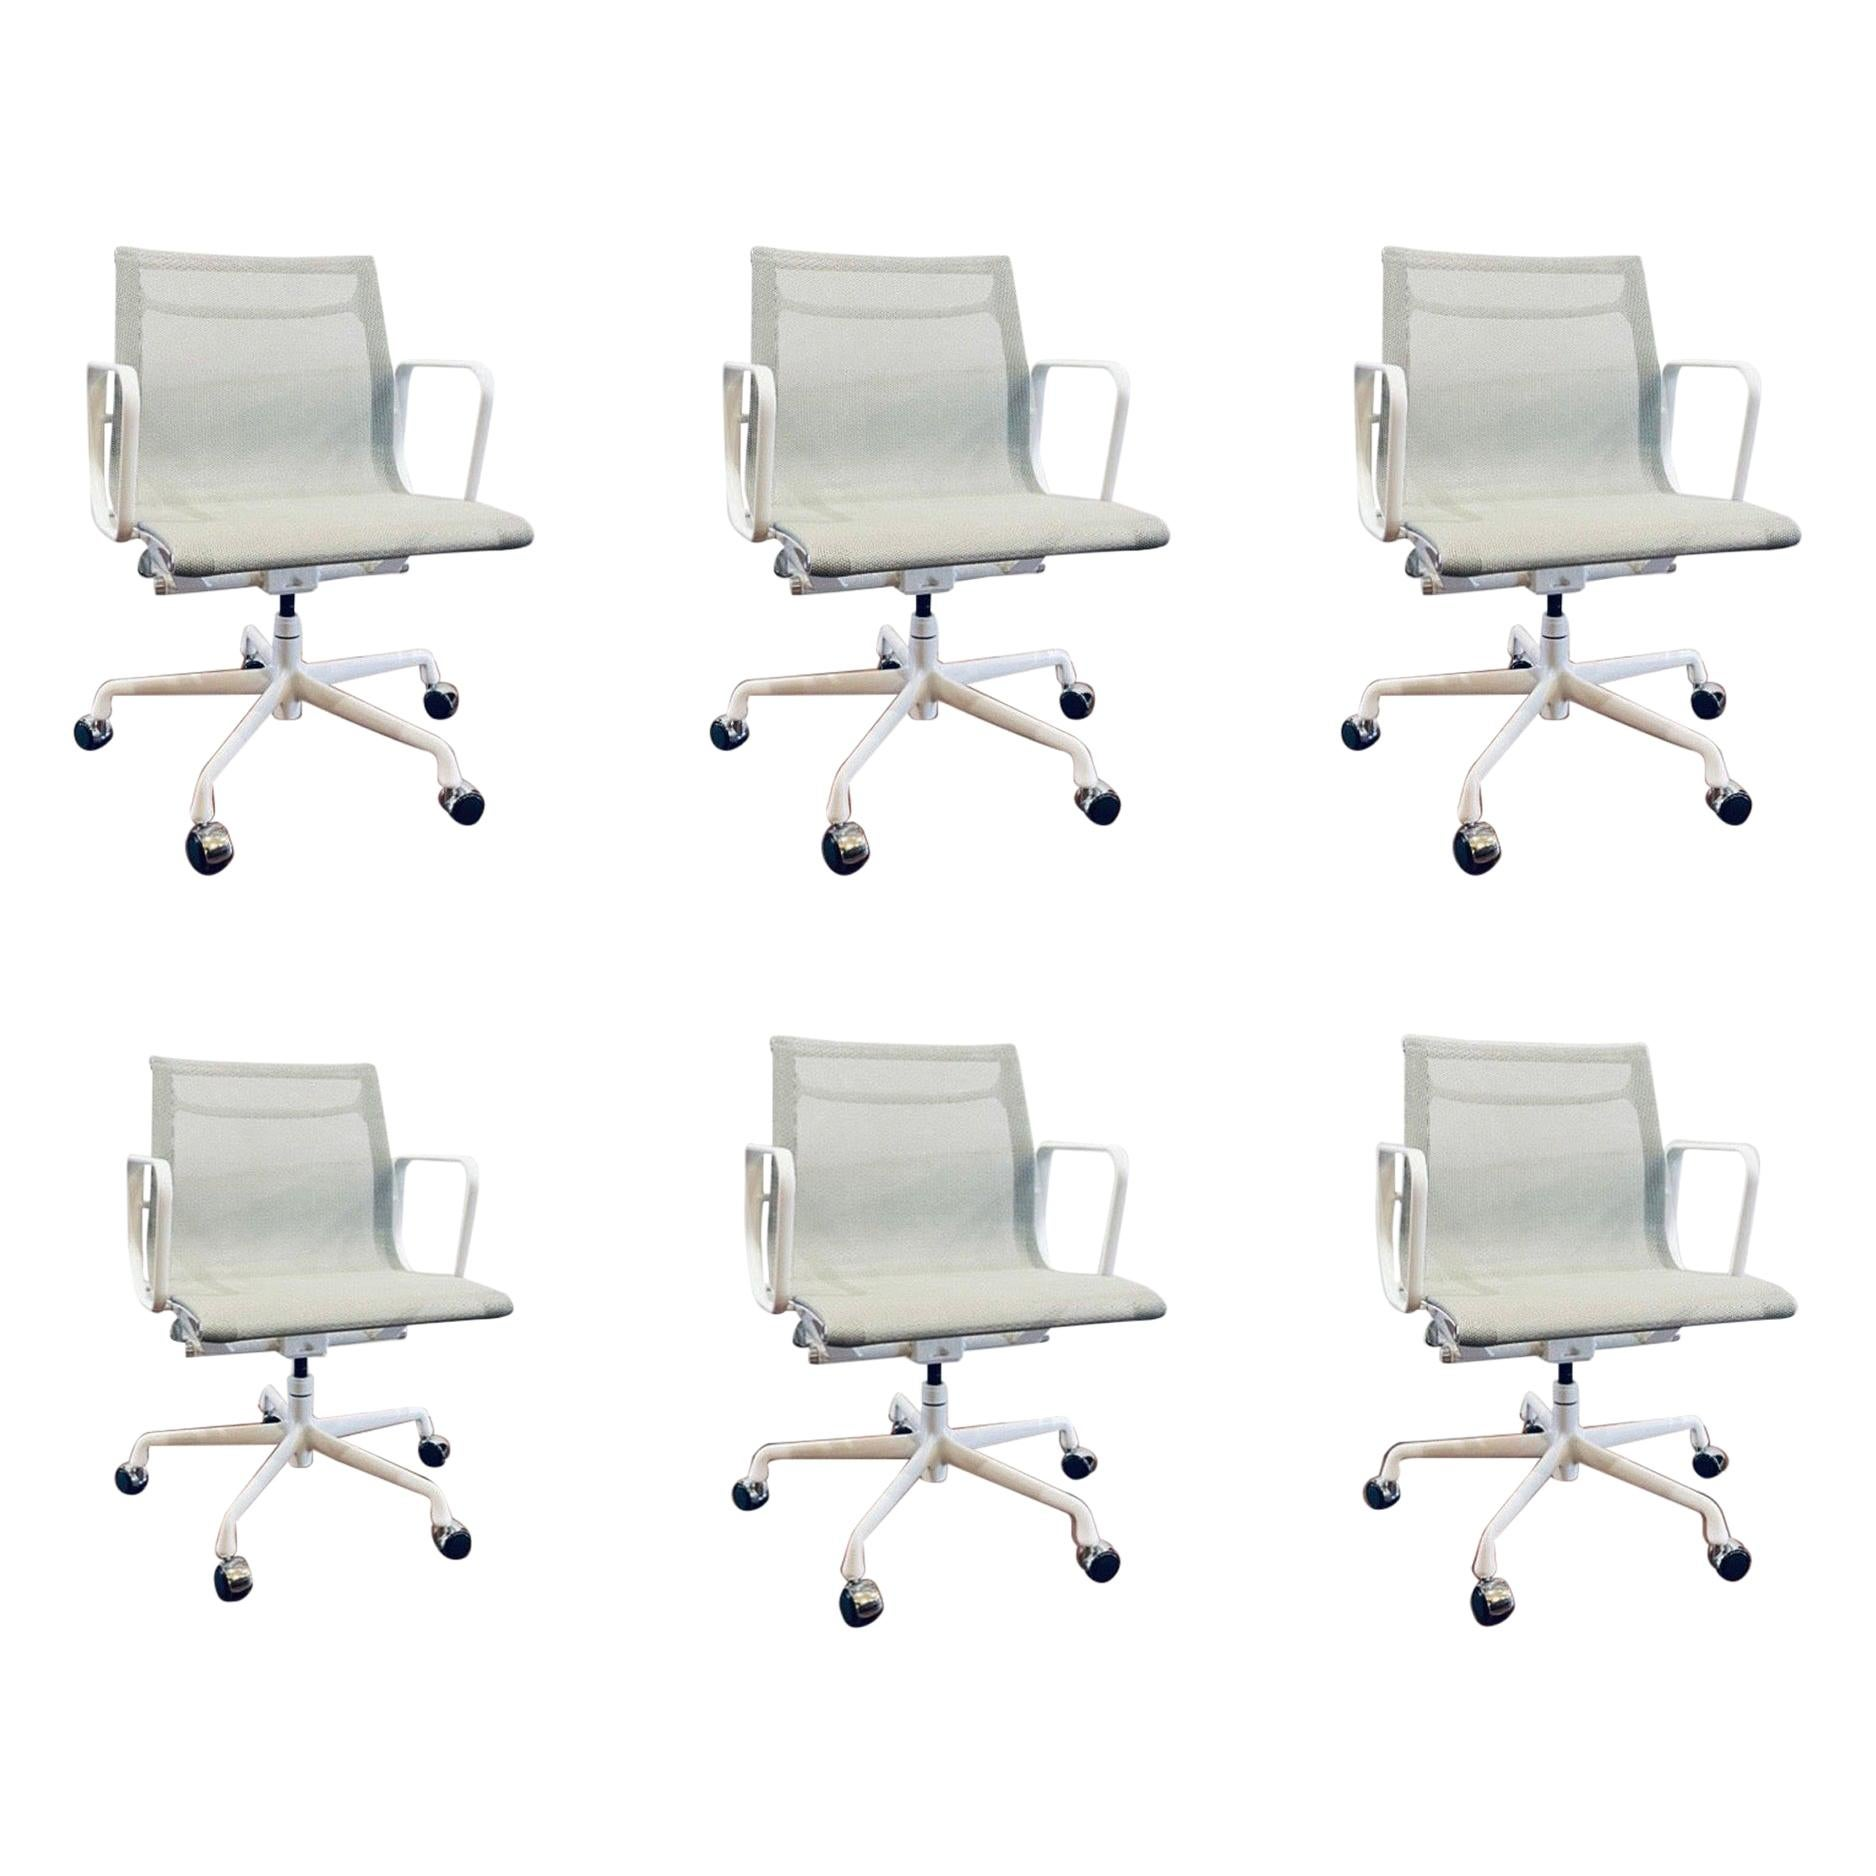 Eames Herman Miller Aluminum Group Chair Casters Grey/White Mesh